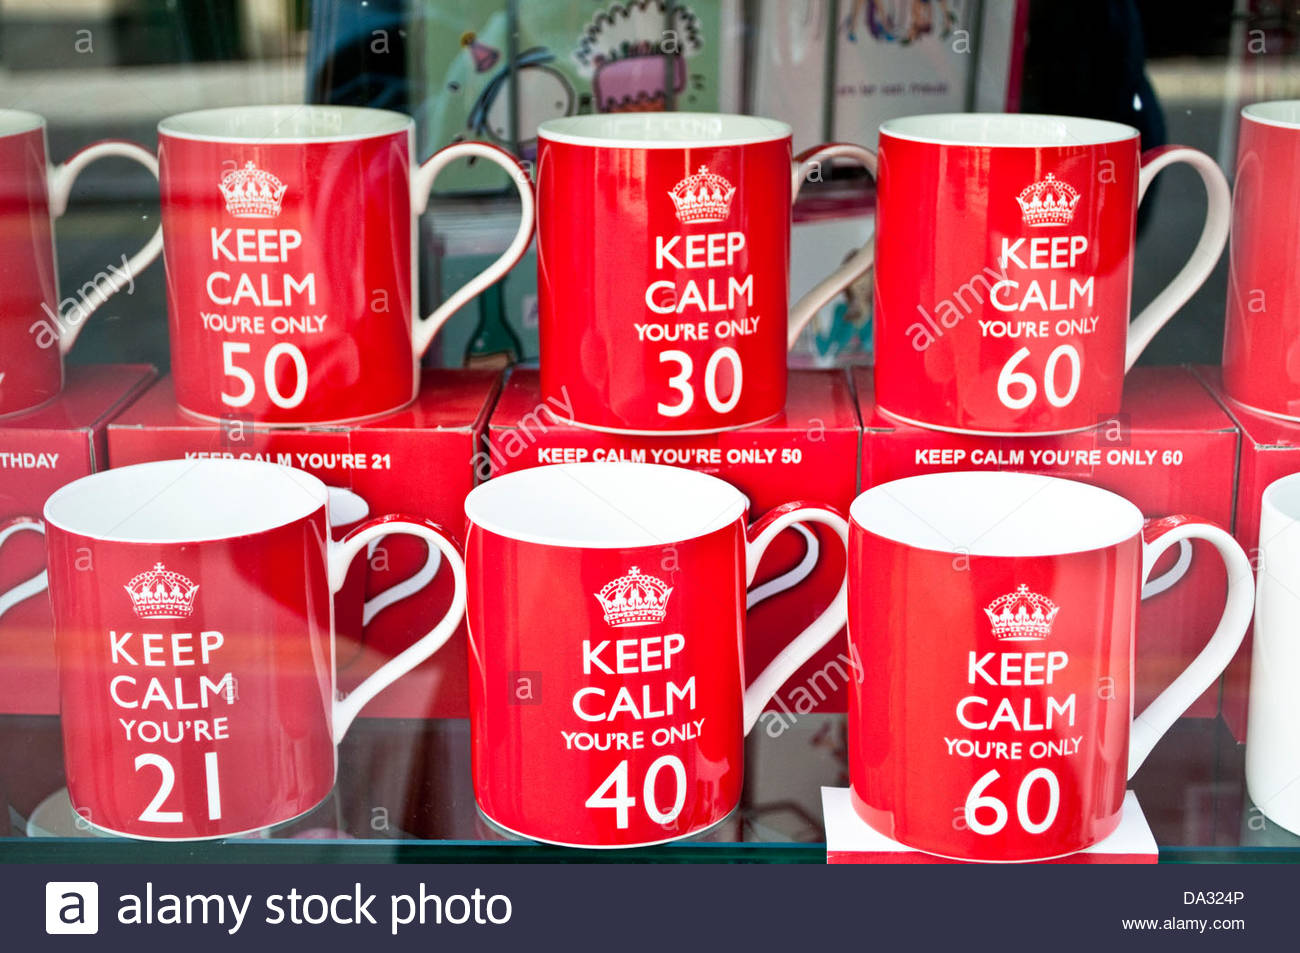 Keep calm mugs for different age birthdays displayed in a shop window, London, UK - Stock Image